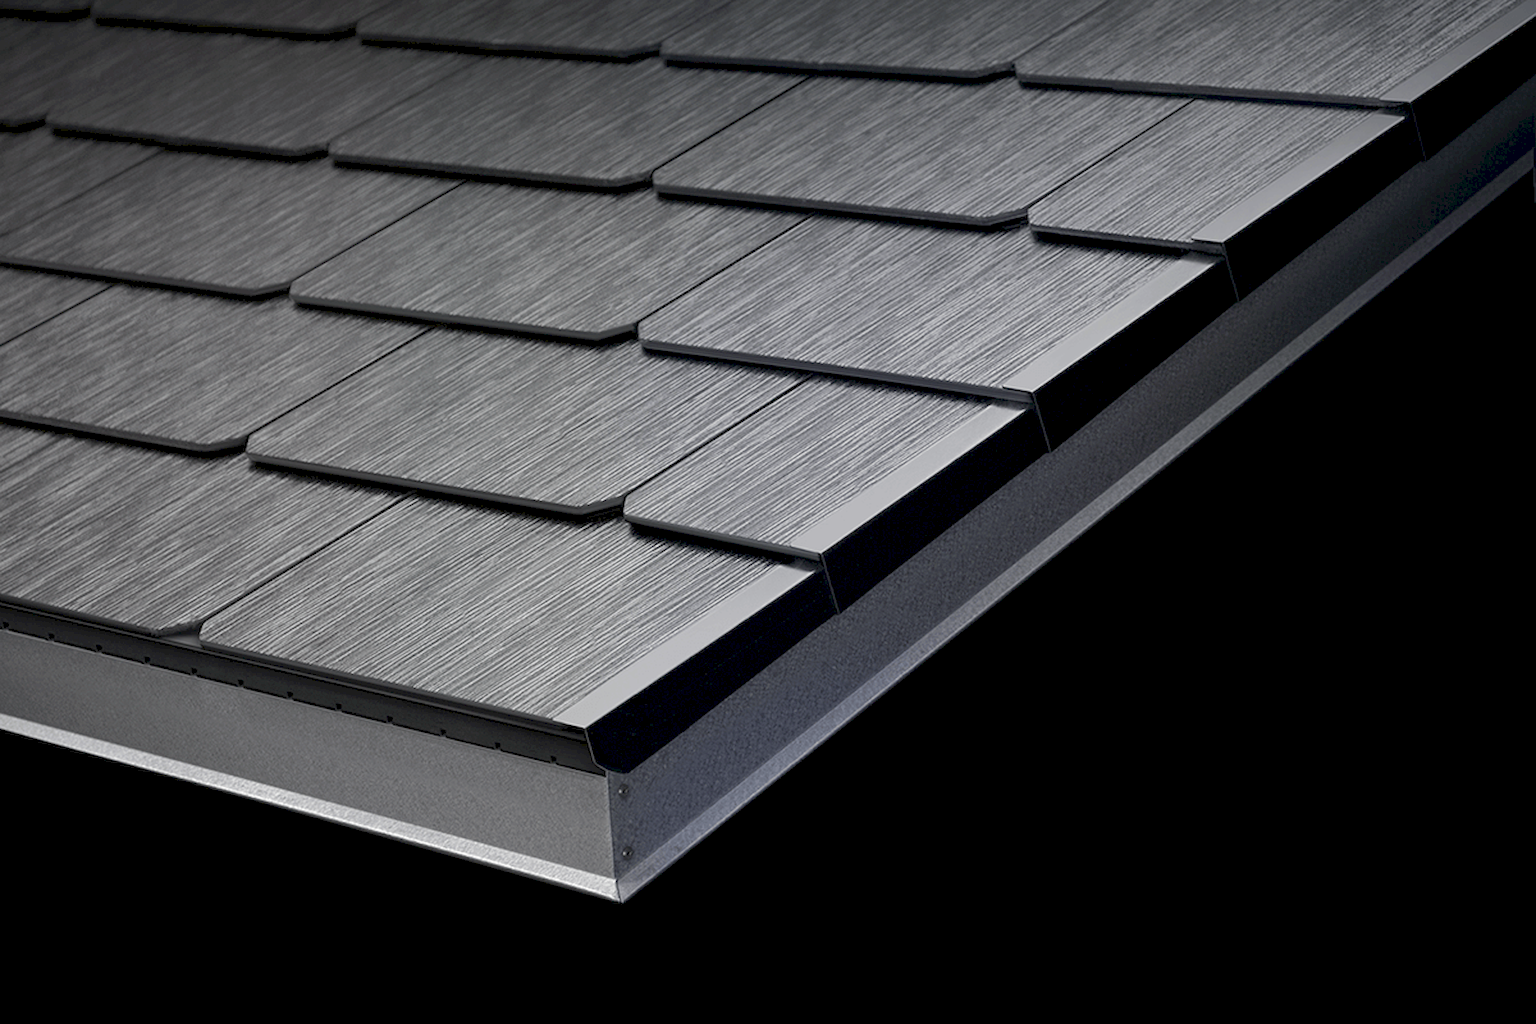 Fantastic Photo Voltaic Roof Tiles Can Present Power And Look Trendy Https Crithome Com Solar Roof Tiles Can Provide Solar Roof Solar Roof Tiles Roof Tiles